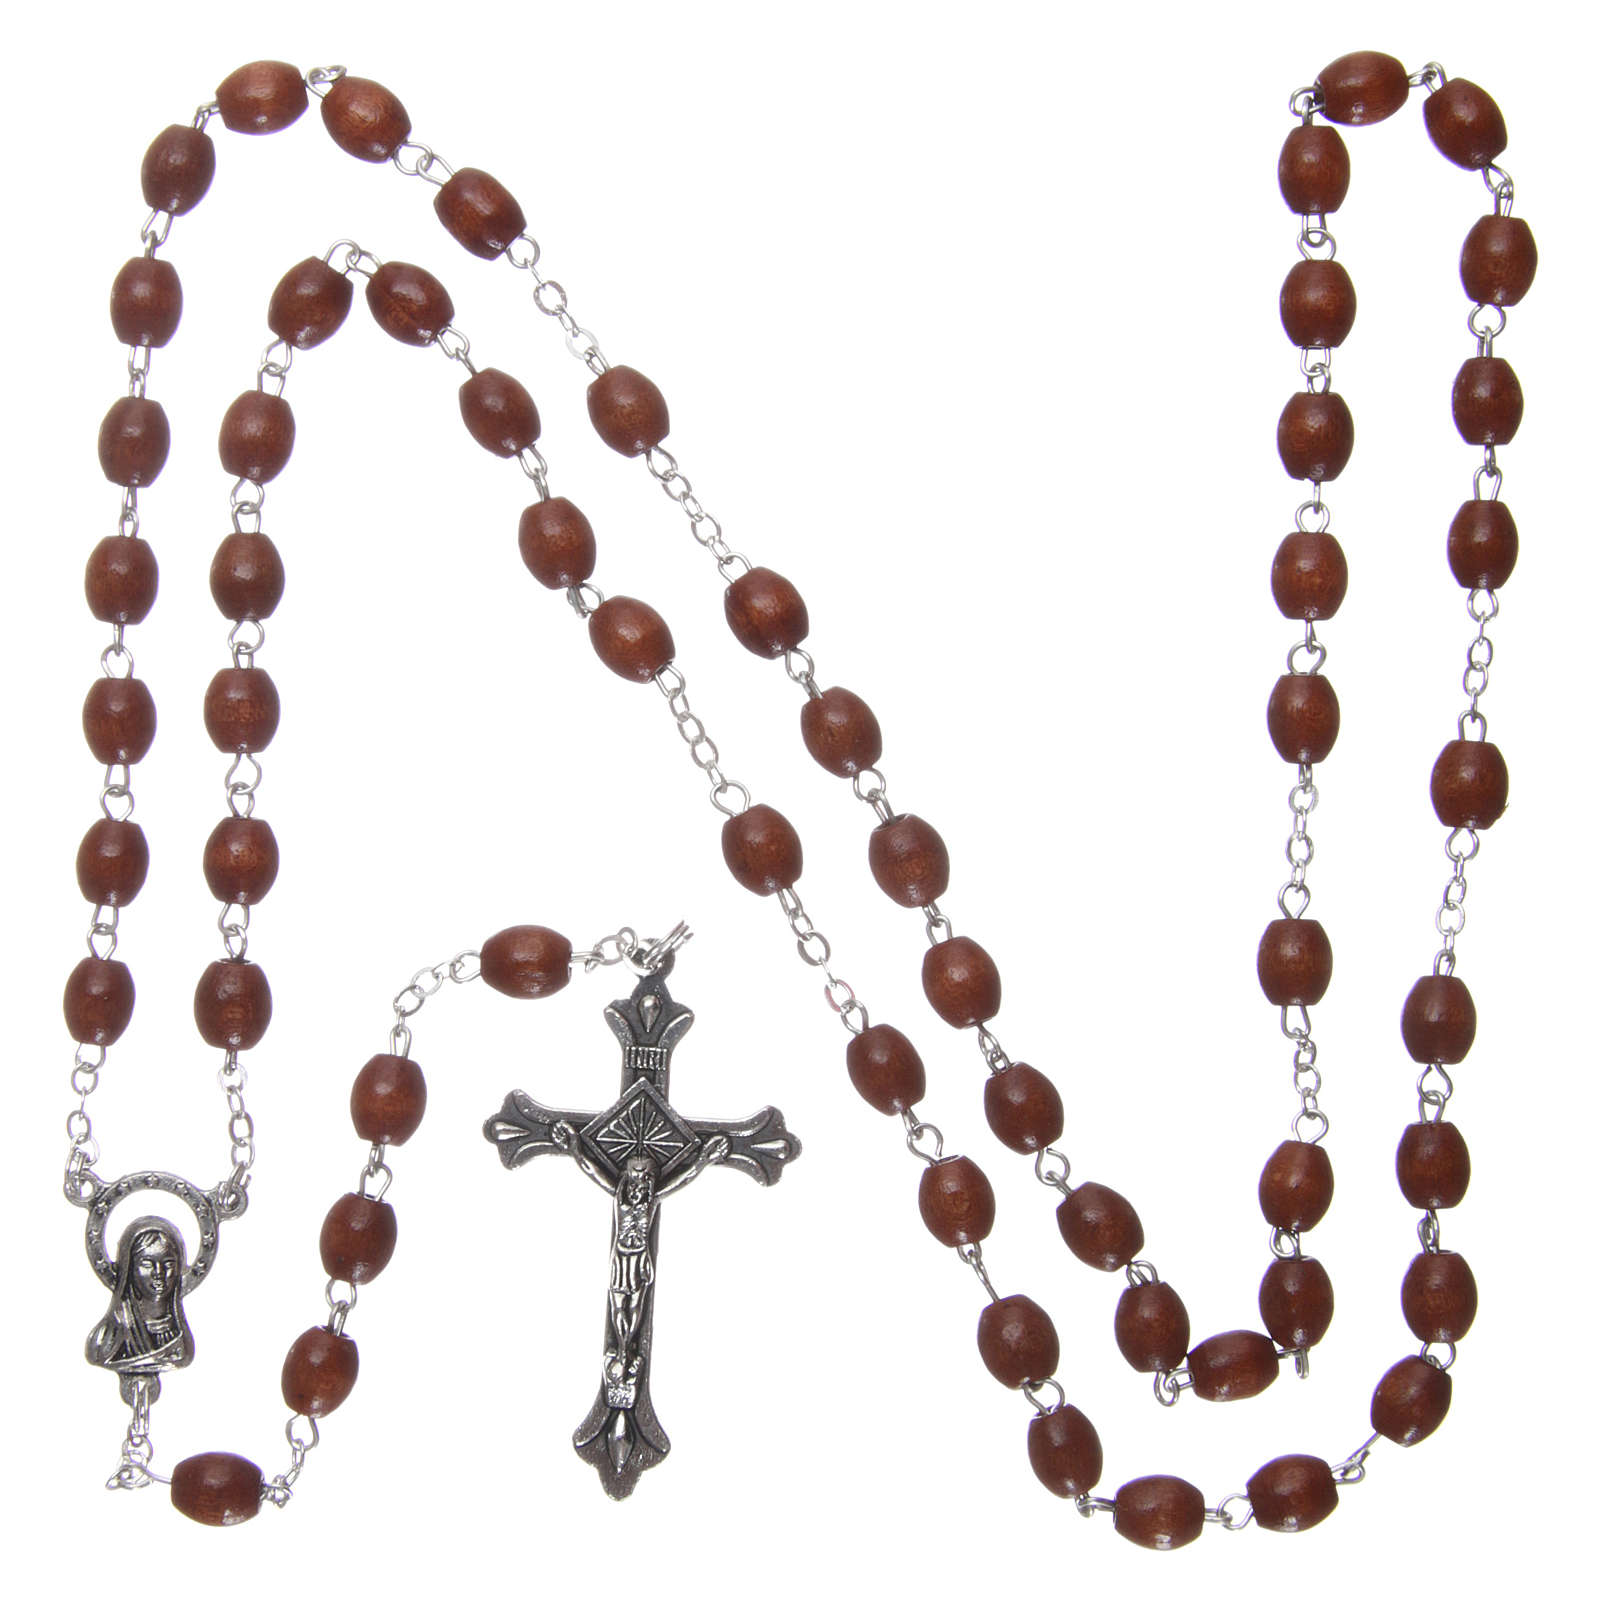 Rosary in wood 4x3 mm grains, natural wood 4